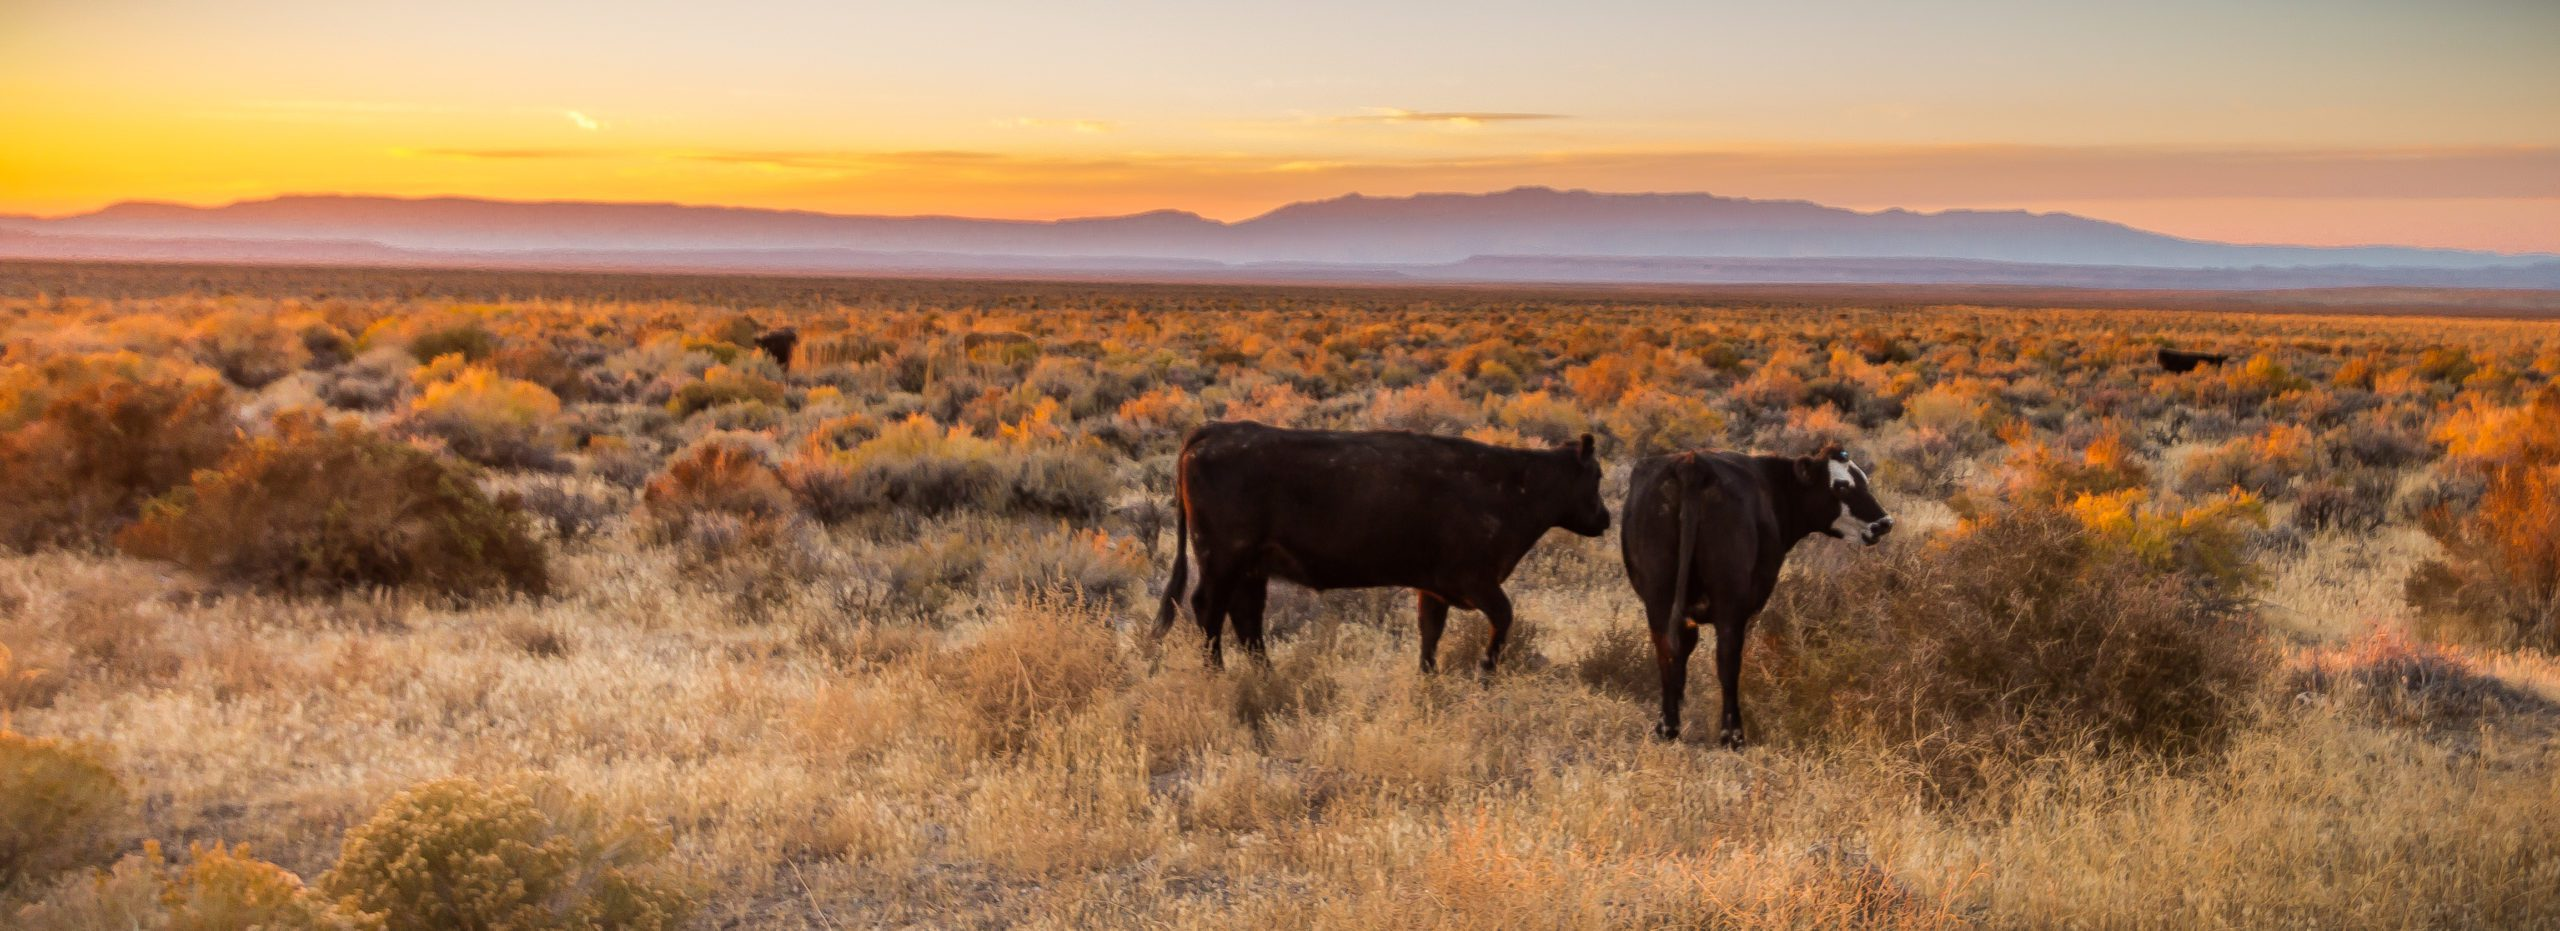 Two black cows in front of sunset